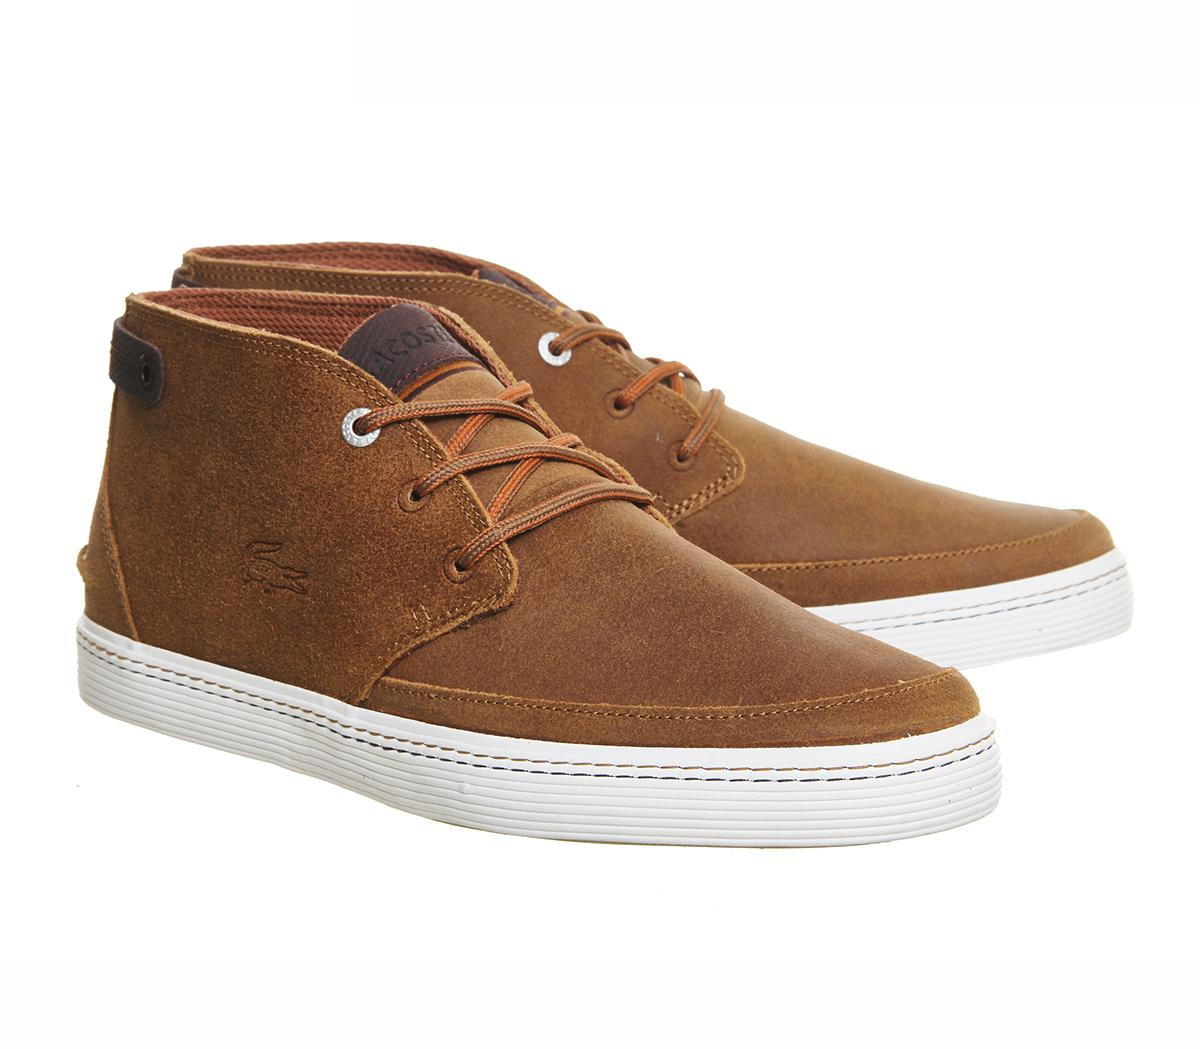 lyst lacoste clavel chukka boots in brown for men. Black Bedroom Furniture Sets. Home Design Ideas